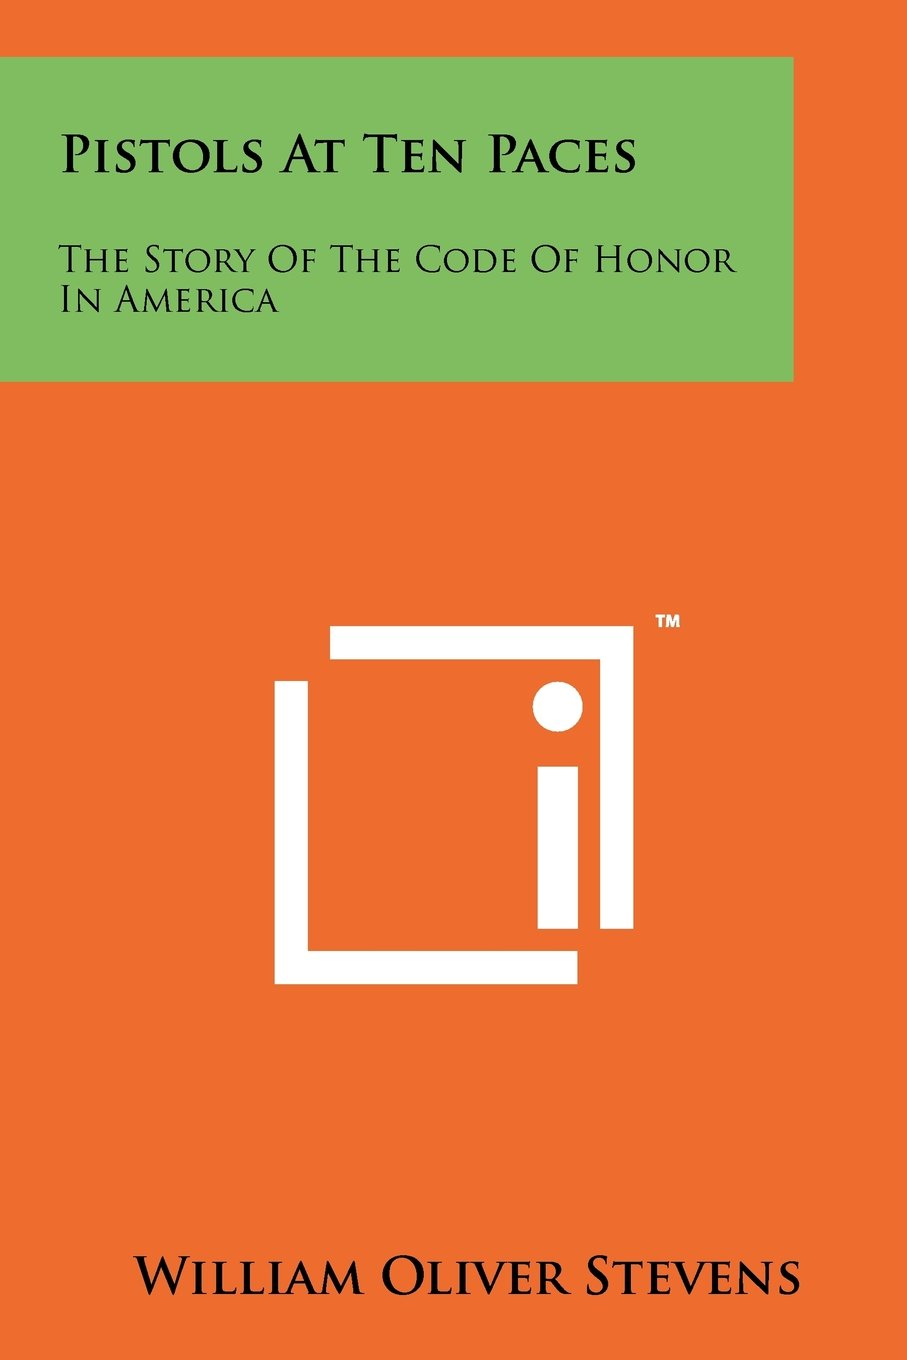 Pistols At Ten Paces: The Story Of The Code Of Honor In America PDF